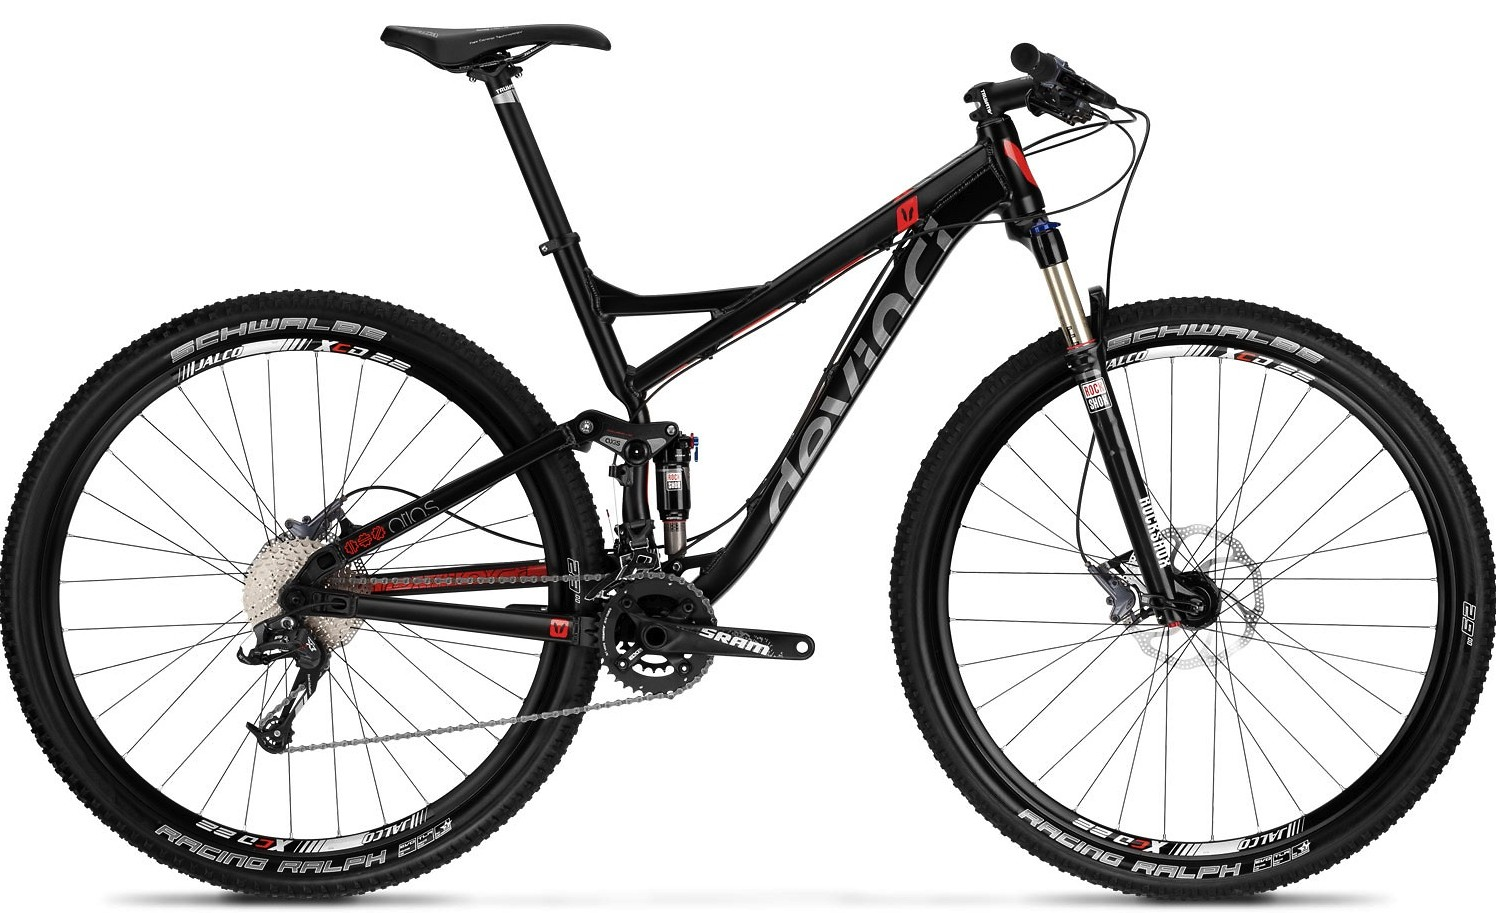 2013 Devinci Atlas XP Bike Devinci 2013 Atlas XP